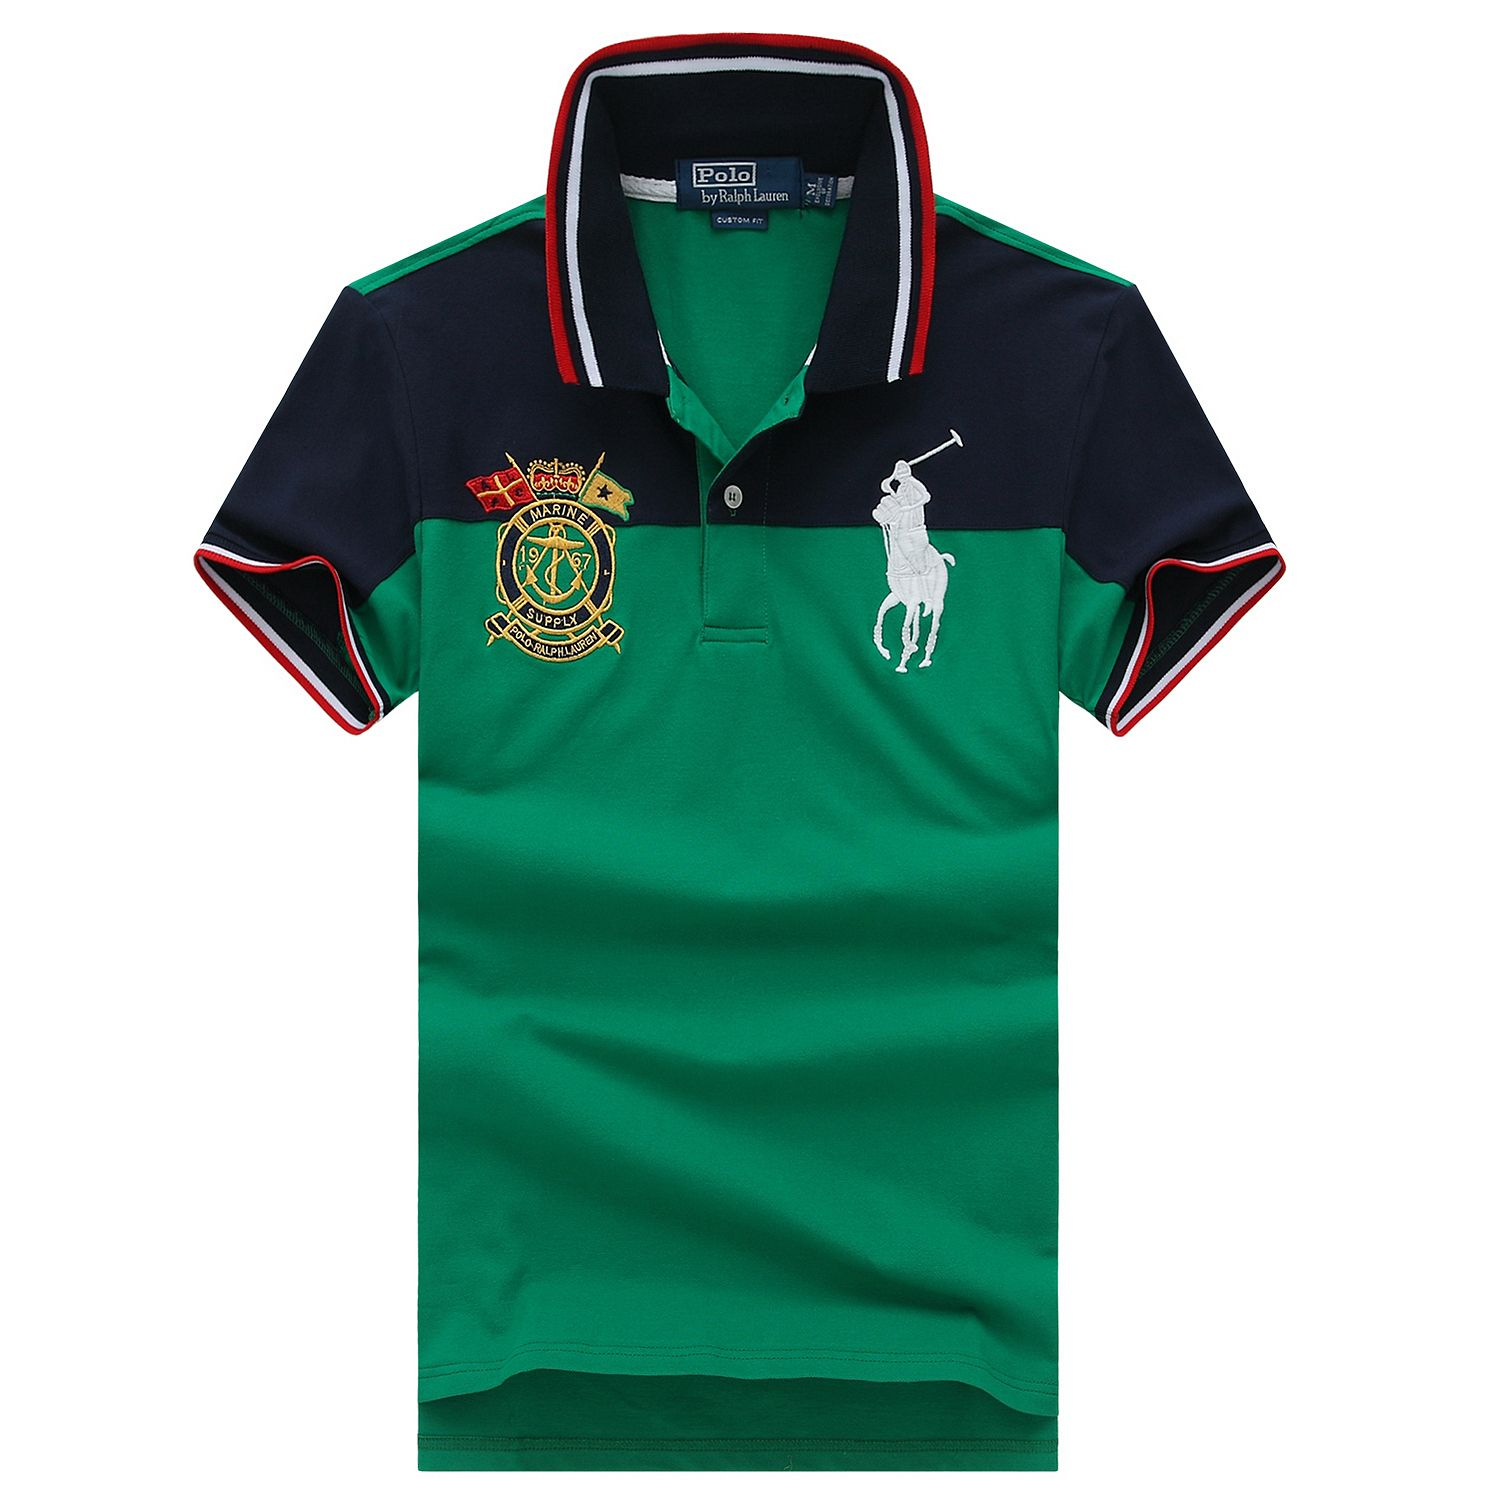 Polo Ralph Lauren Men's Custom Fit Big Pony Mexico PRL Cup